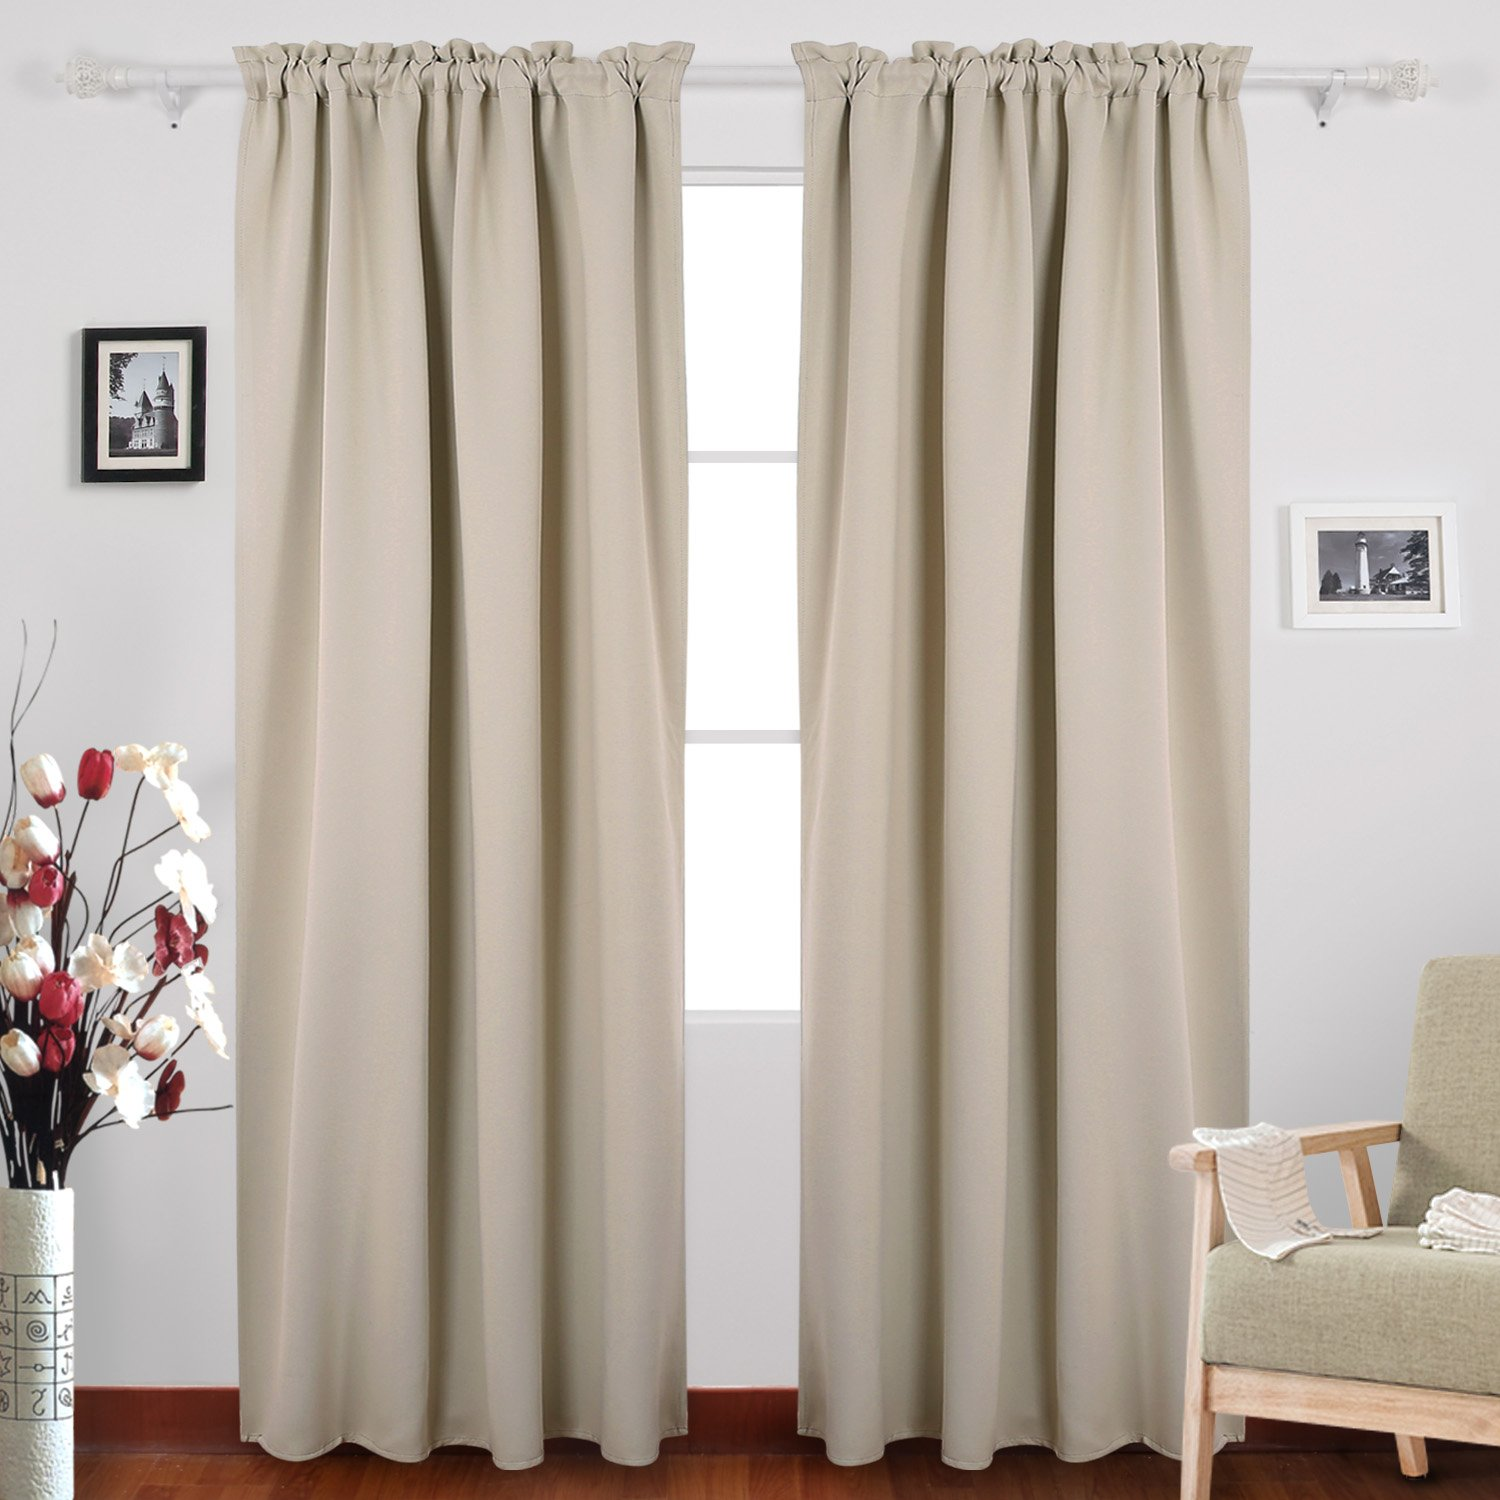 Deconovo Rod Pocket Blackout Room Darkening Curtains for Bedroom Beige